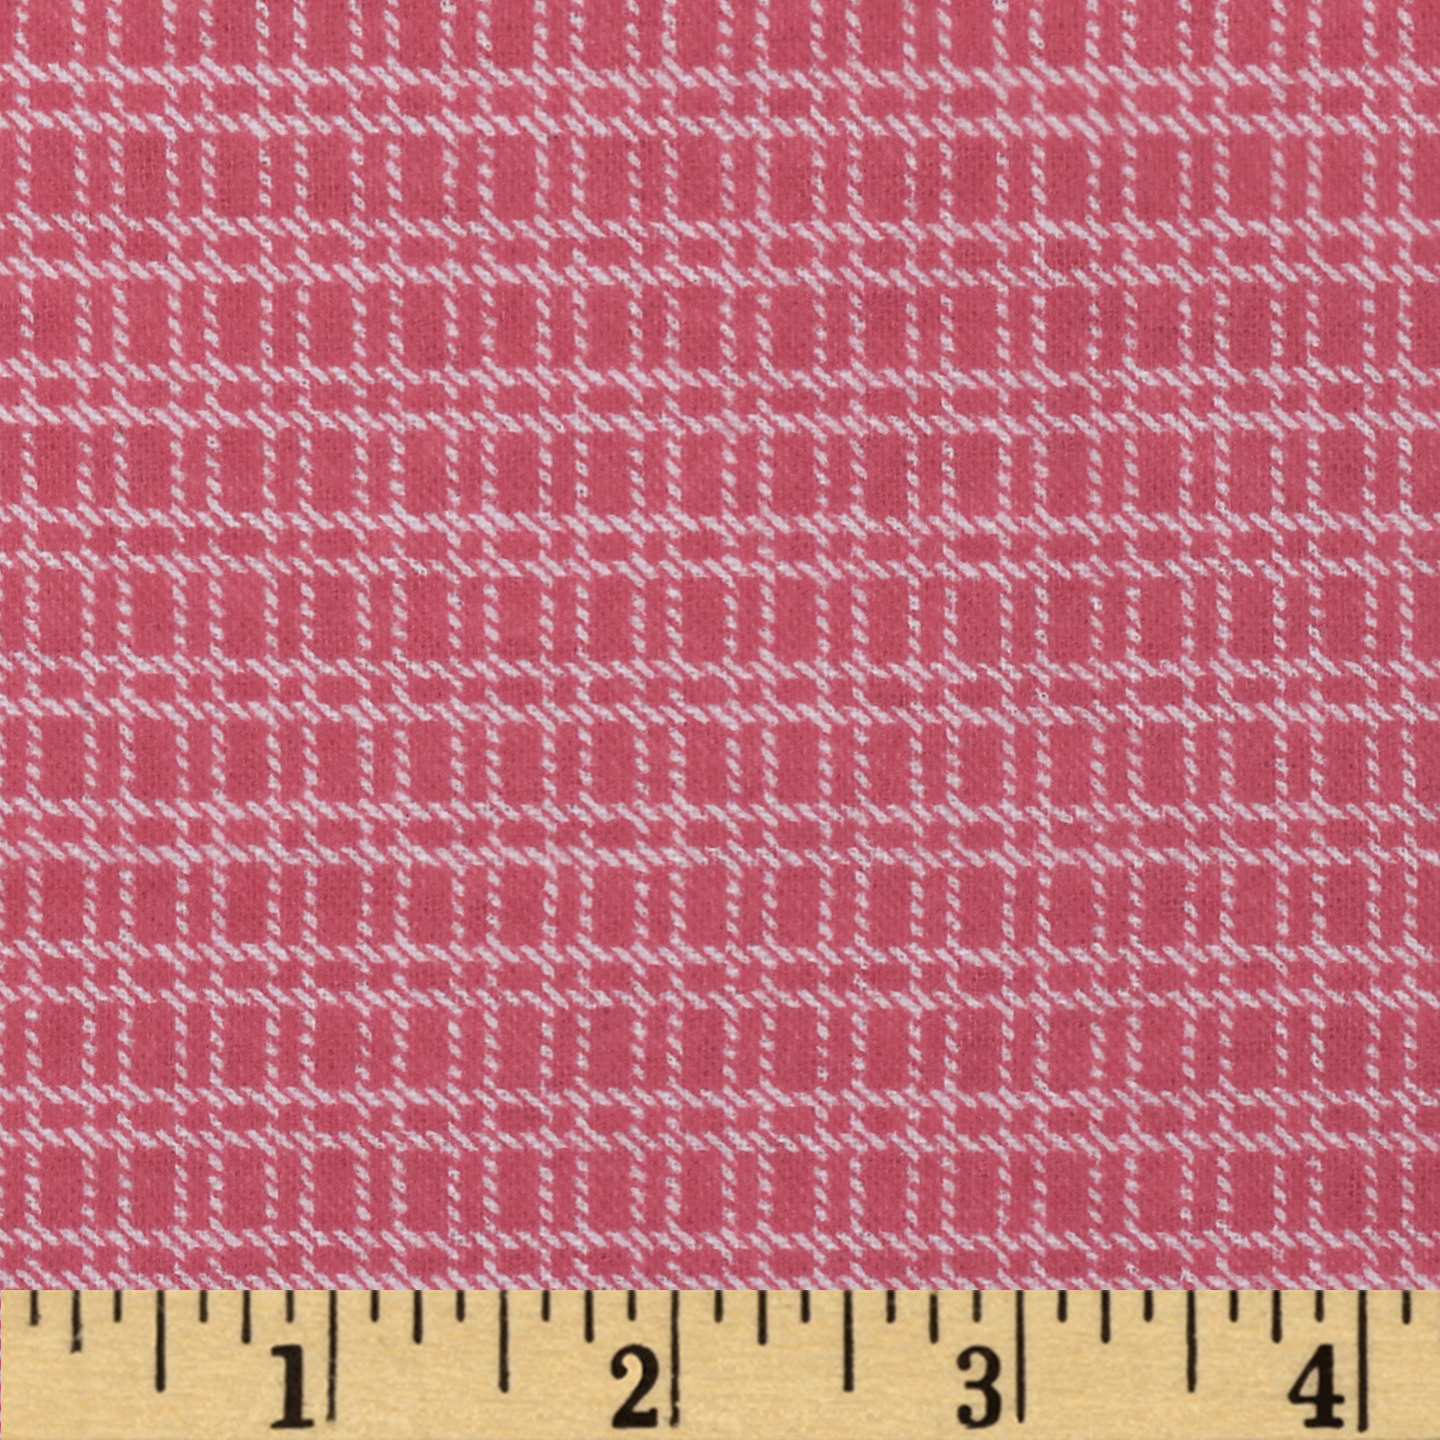 Aunt Polly's Flannel Medium Checkered Pink/White Fabric